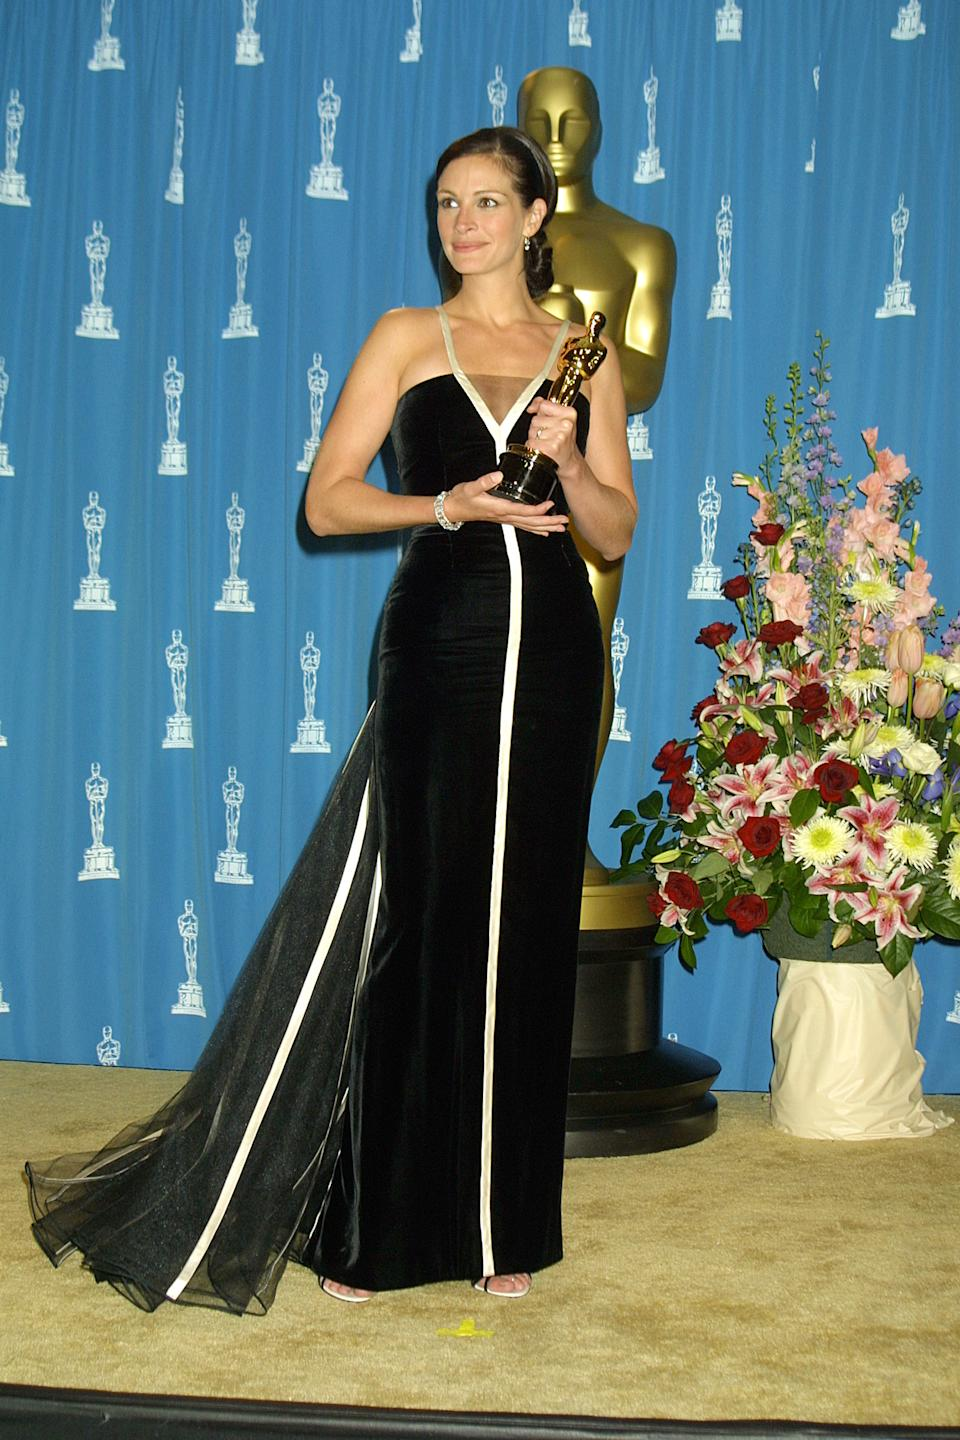 """<p>Roberts's acceptance speech after winning the Oscar for Best Actress for her role in """"Erin Brockovich"""" is almost as memorable as her black and white vintage Valentino gown. The look was an instant red carpet favourite that was pulled for the star from the designer's archives from 1992.</p>"""